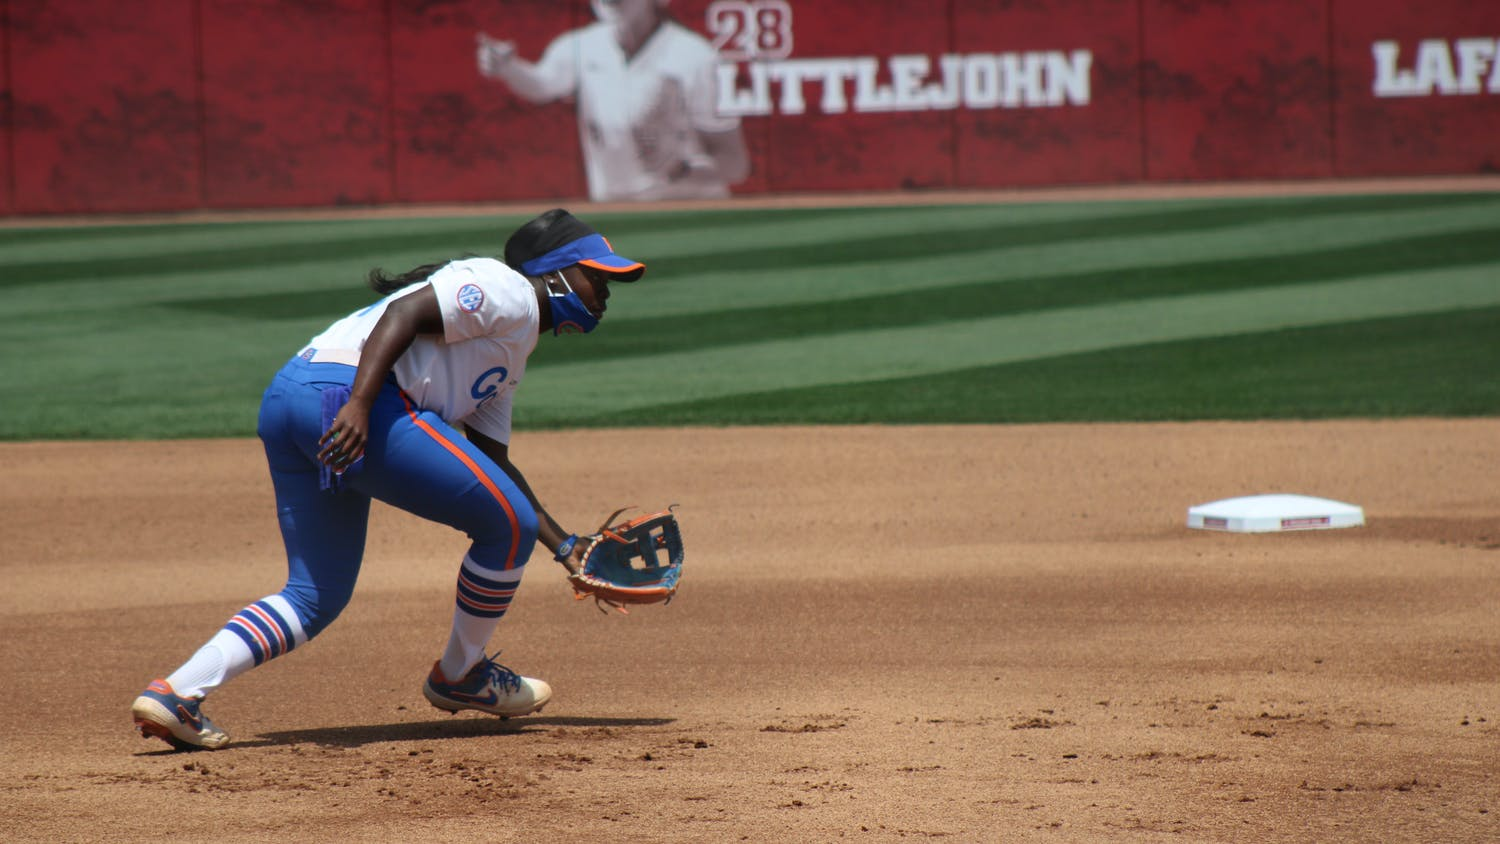 Charla Echols fields a ball against Alabama on April 17. Echols won the game in walk-off fashion with a three-run home run Friday.